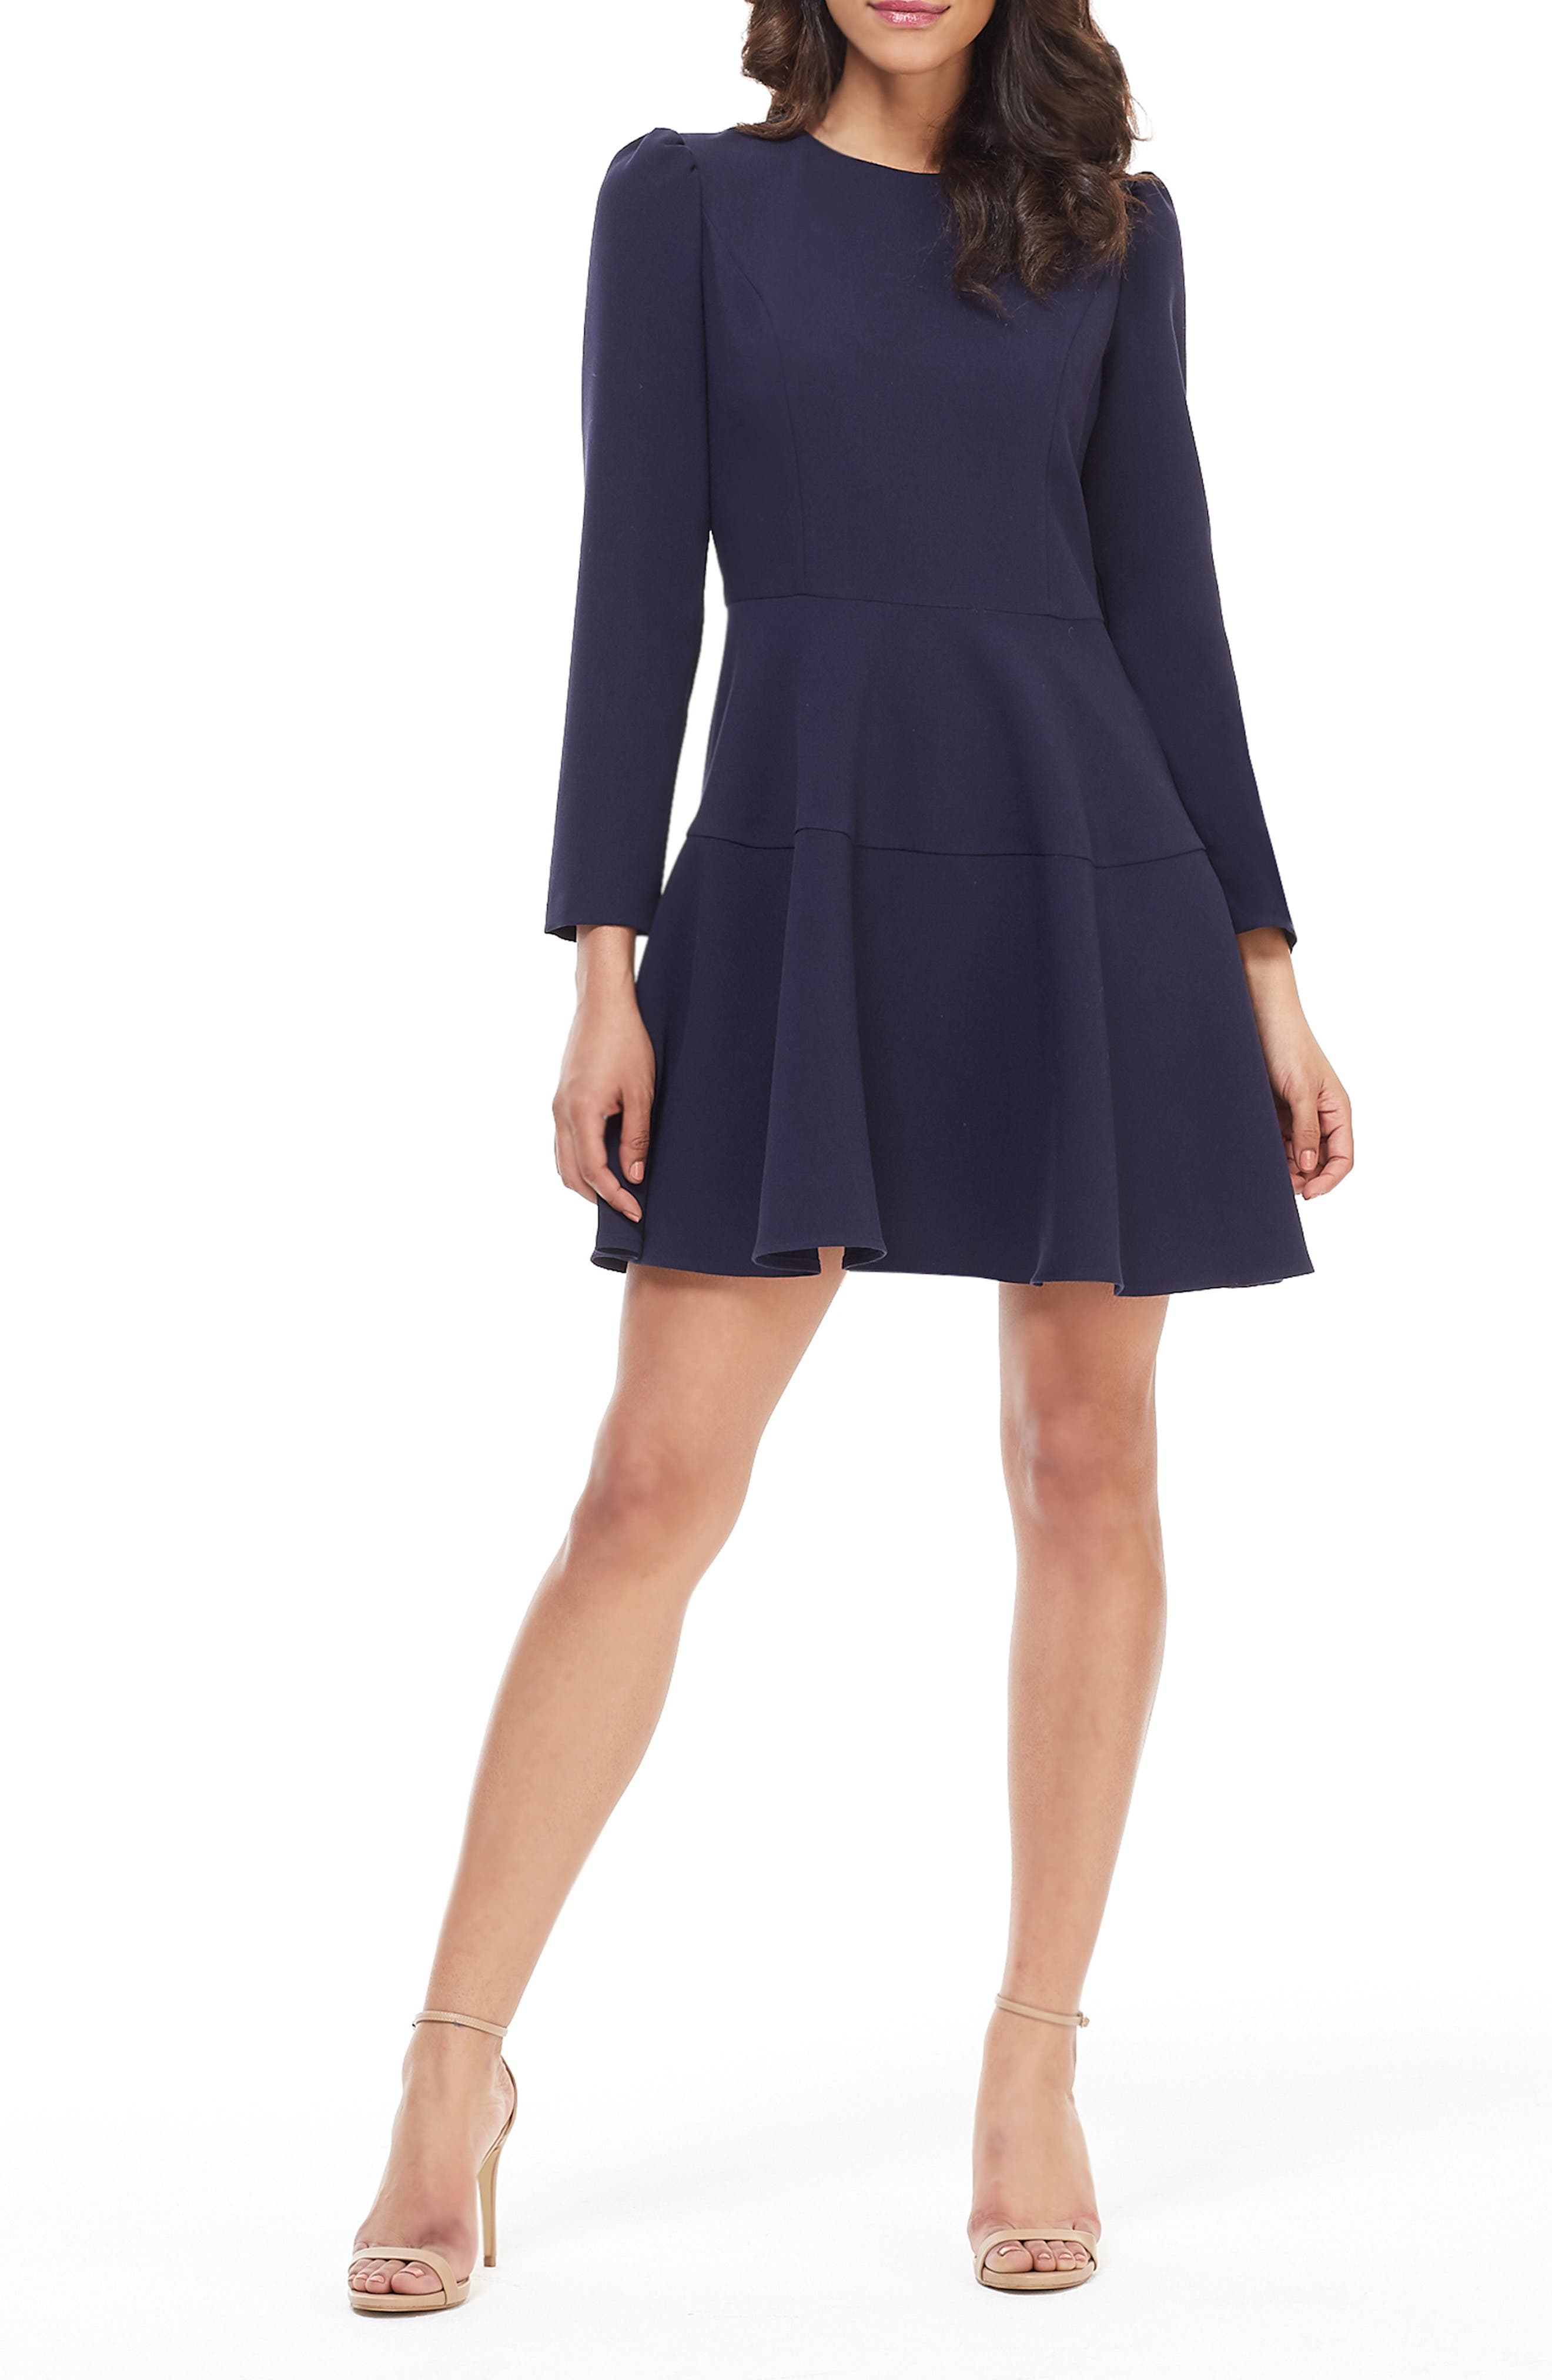 Gal Meets Glam Collection Celeste Fit & Flare Dress, 0 (similar to 16W-18W) - Blue